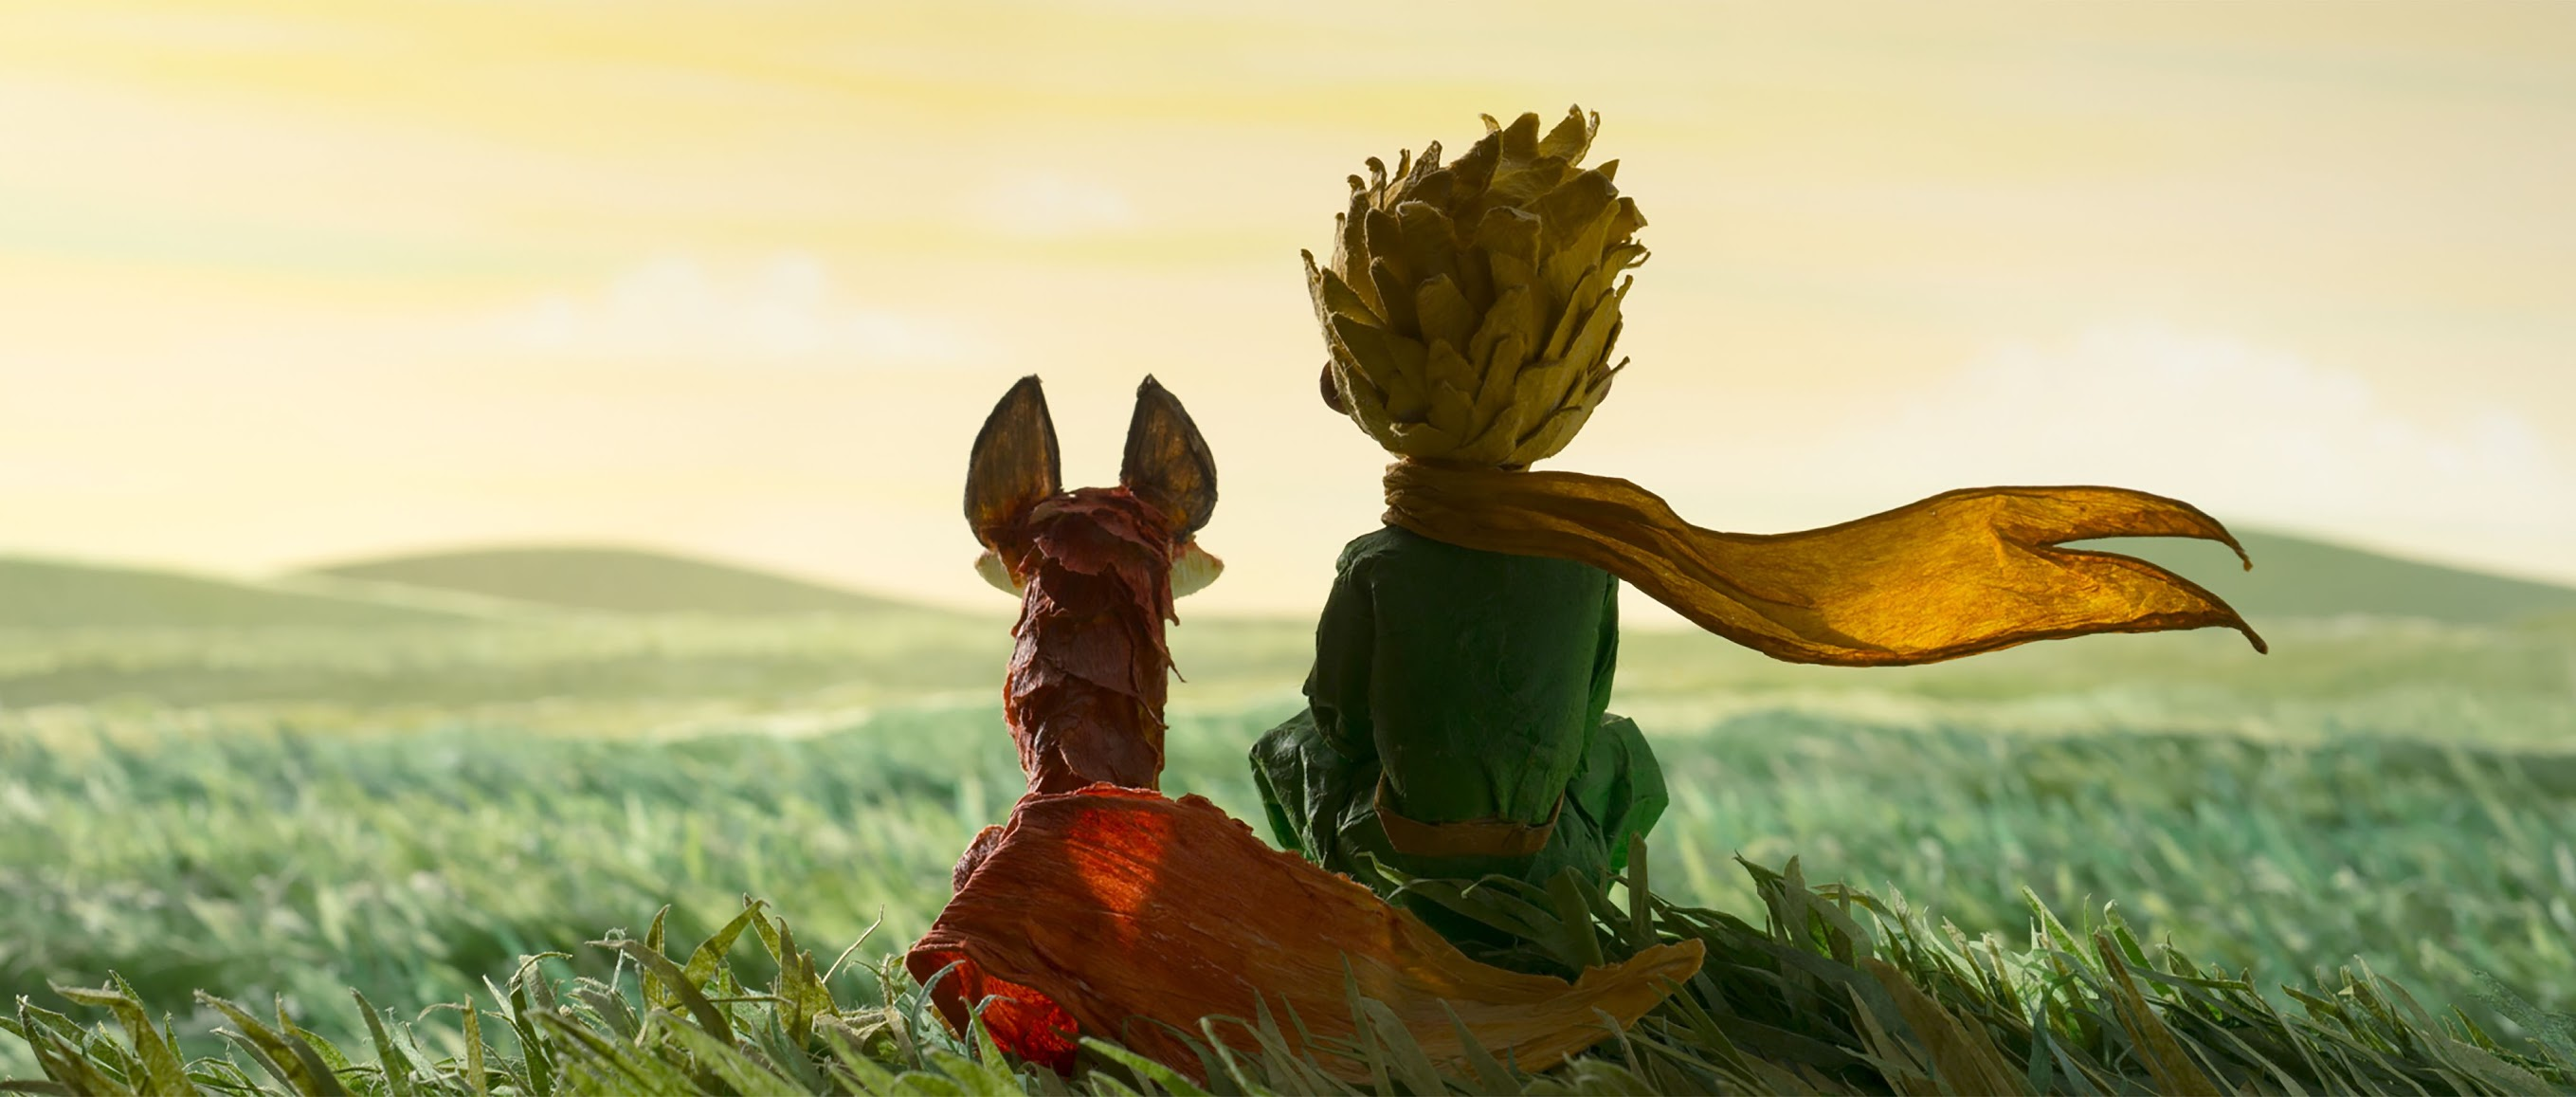 53 the little prince hd wallpapers backgrounds - Prince wallpaper ...